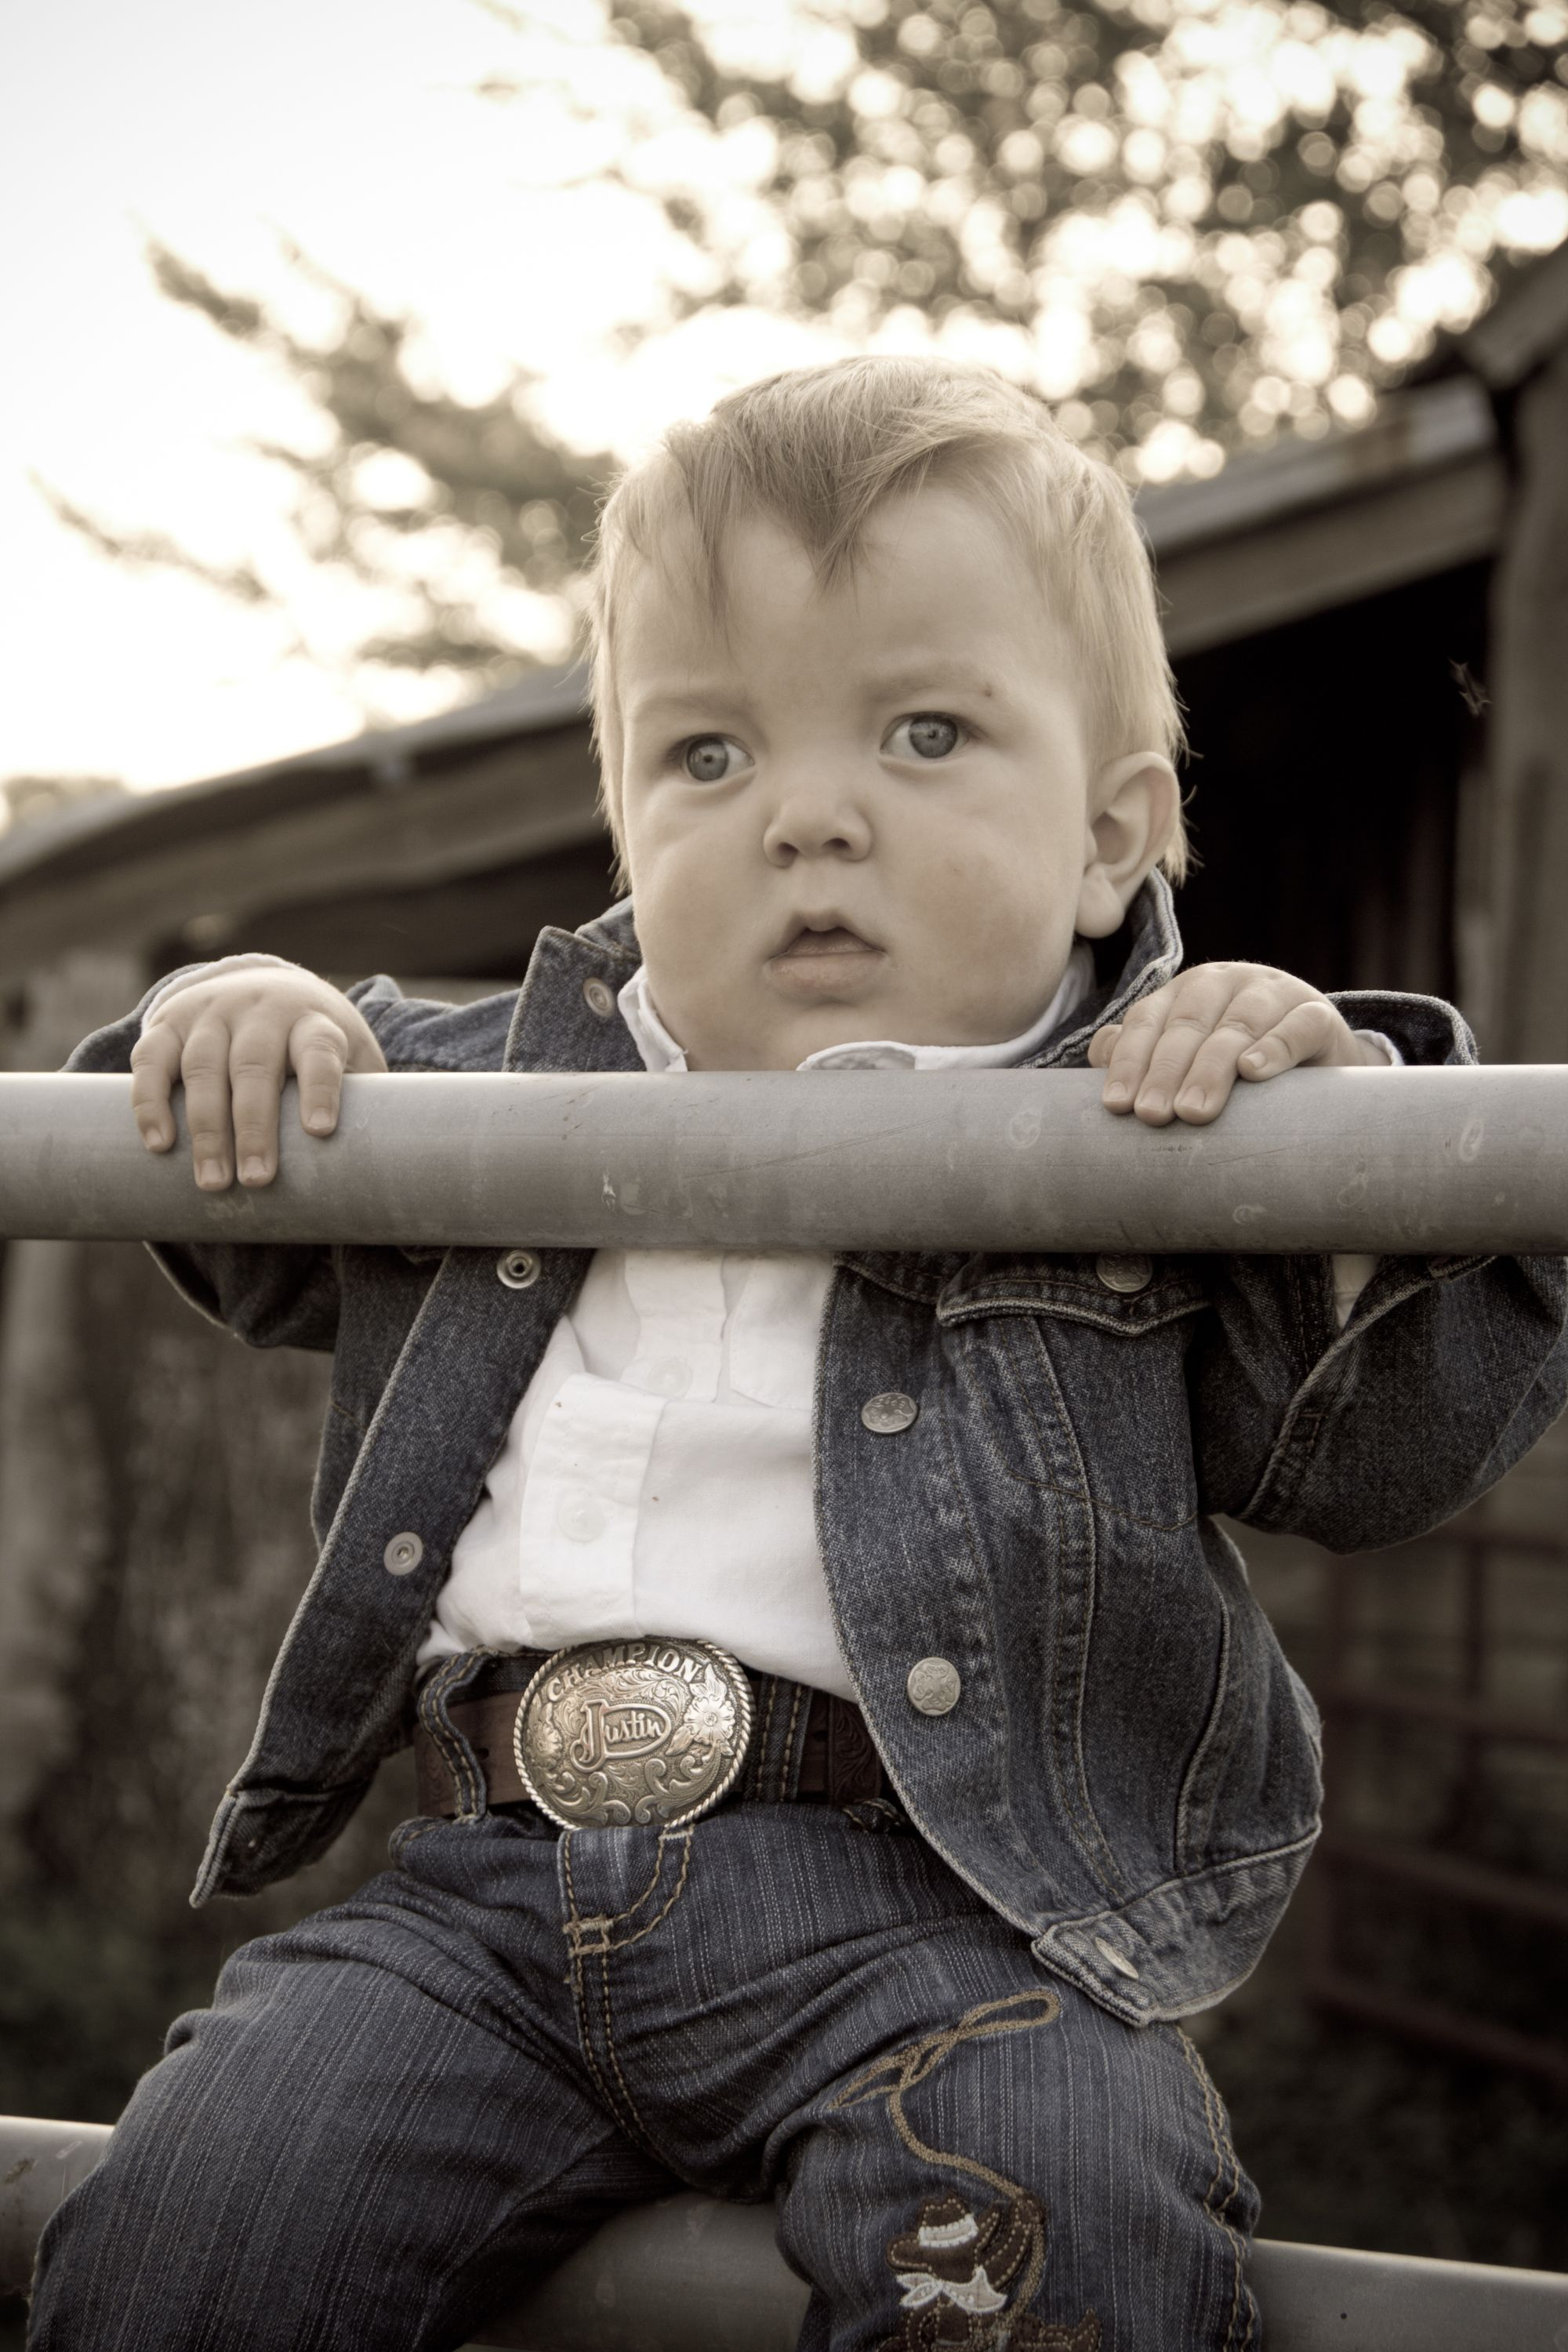 Growing up to be a cowboy !